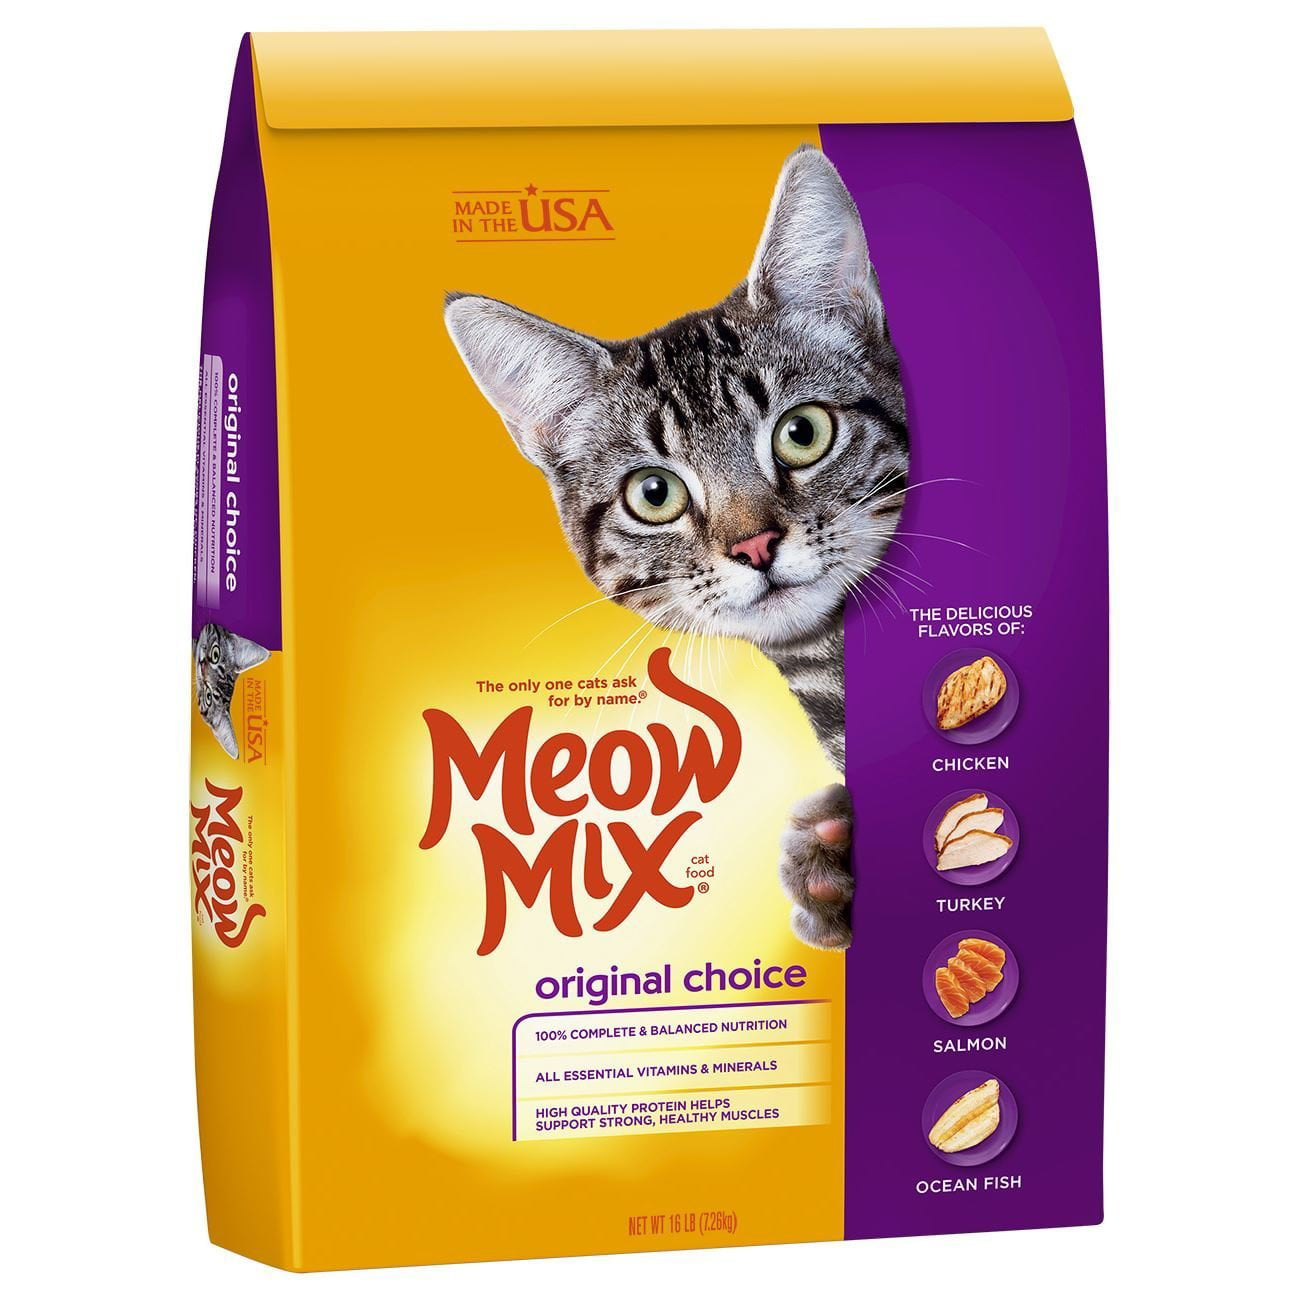 Meow Mix Original Choice Dry Cat Food, 16 lb by The J.M. Smucker Company